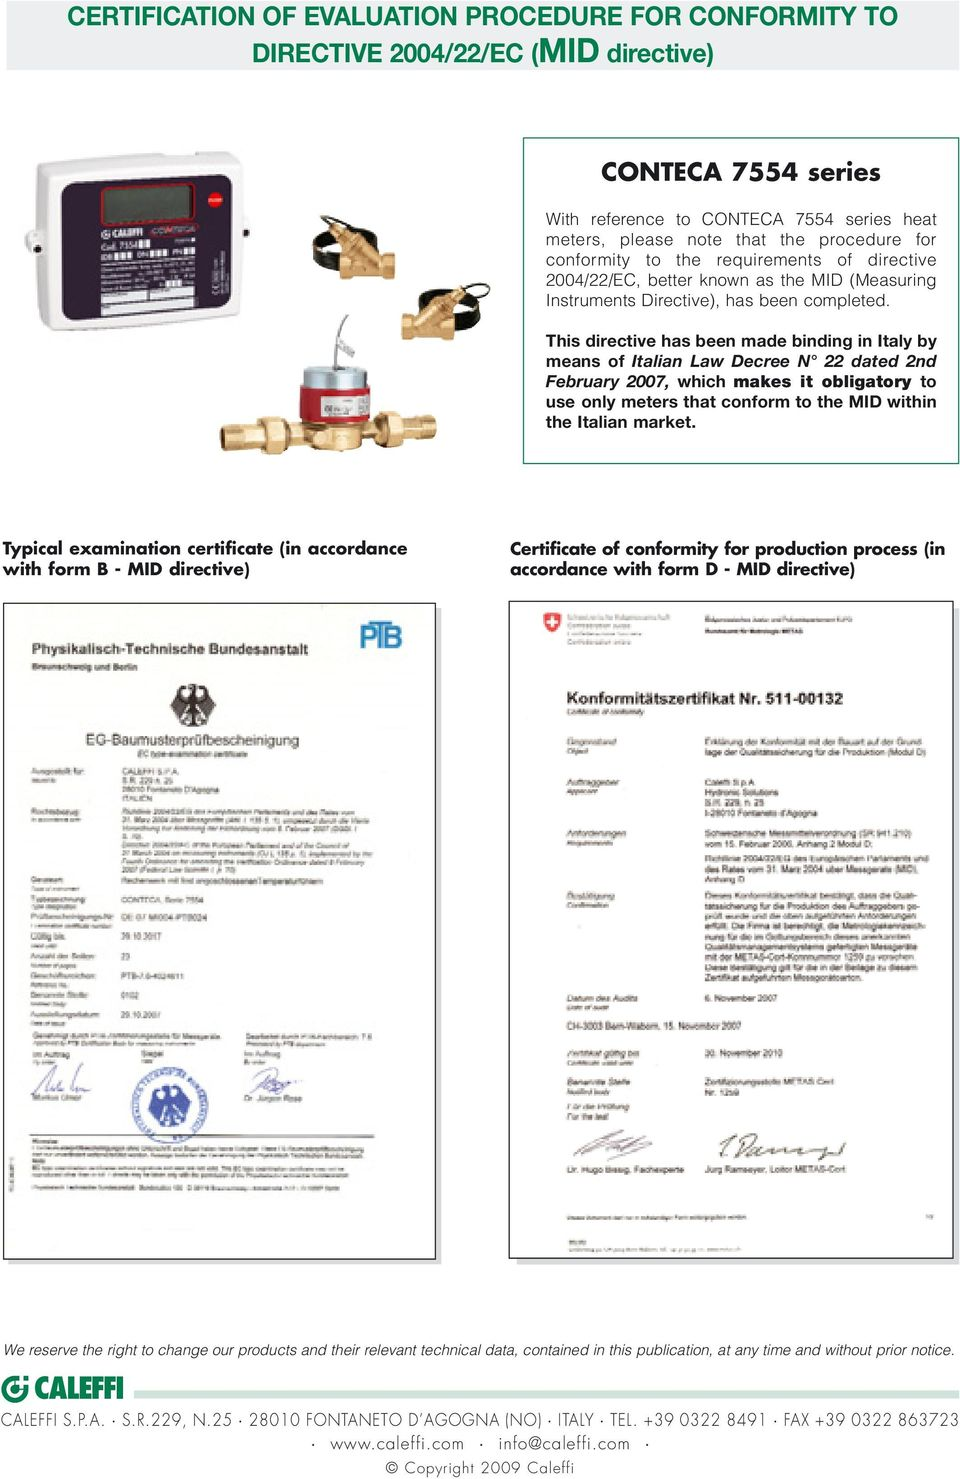 This directive has been made binding in Italy by means of Italian Law Decree N 22 dated 2nd February 2007, which makes it obligatory to use only meters that conform to the MID within the Italian